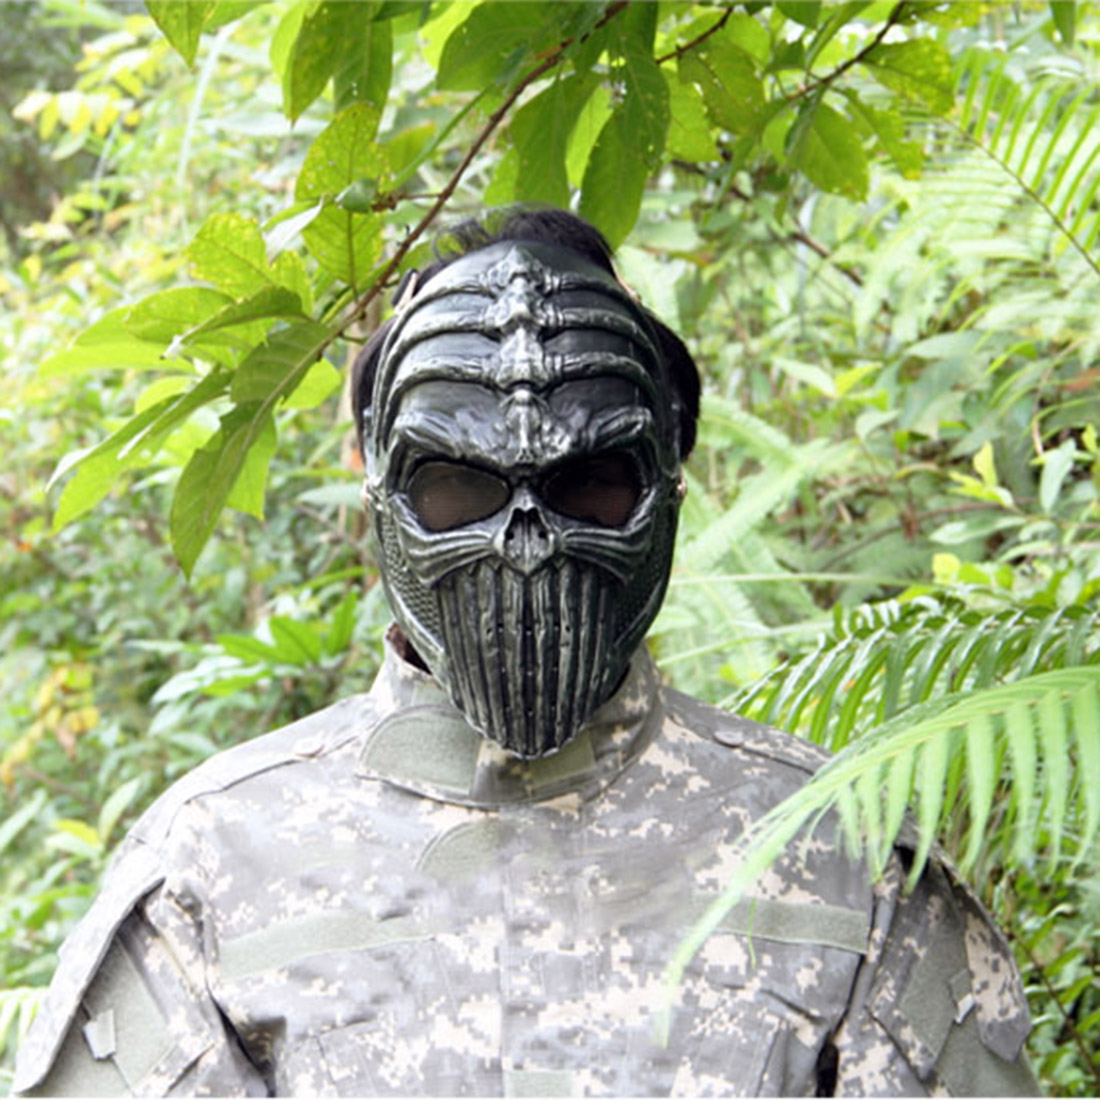 Overhead Skull Mask Outdoor Hunting Cs War Game Mask Skull Skeleton Airsoft Paintball Full Face Tactical Protective Mask 2019